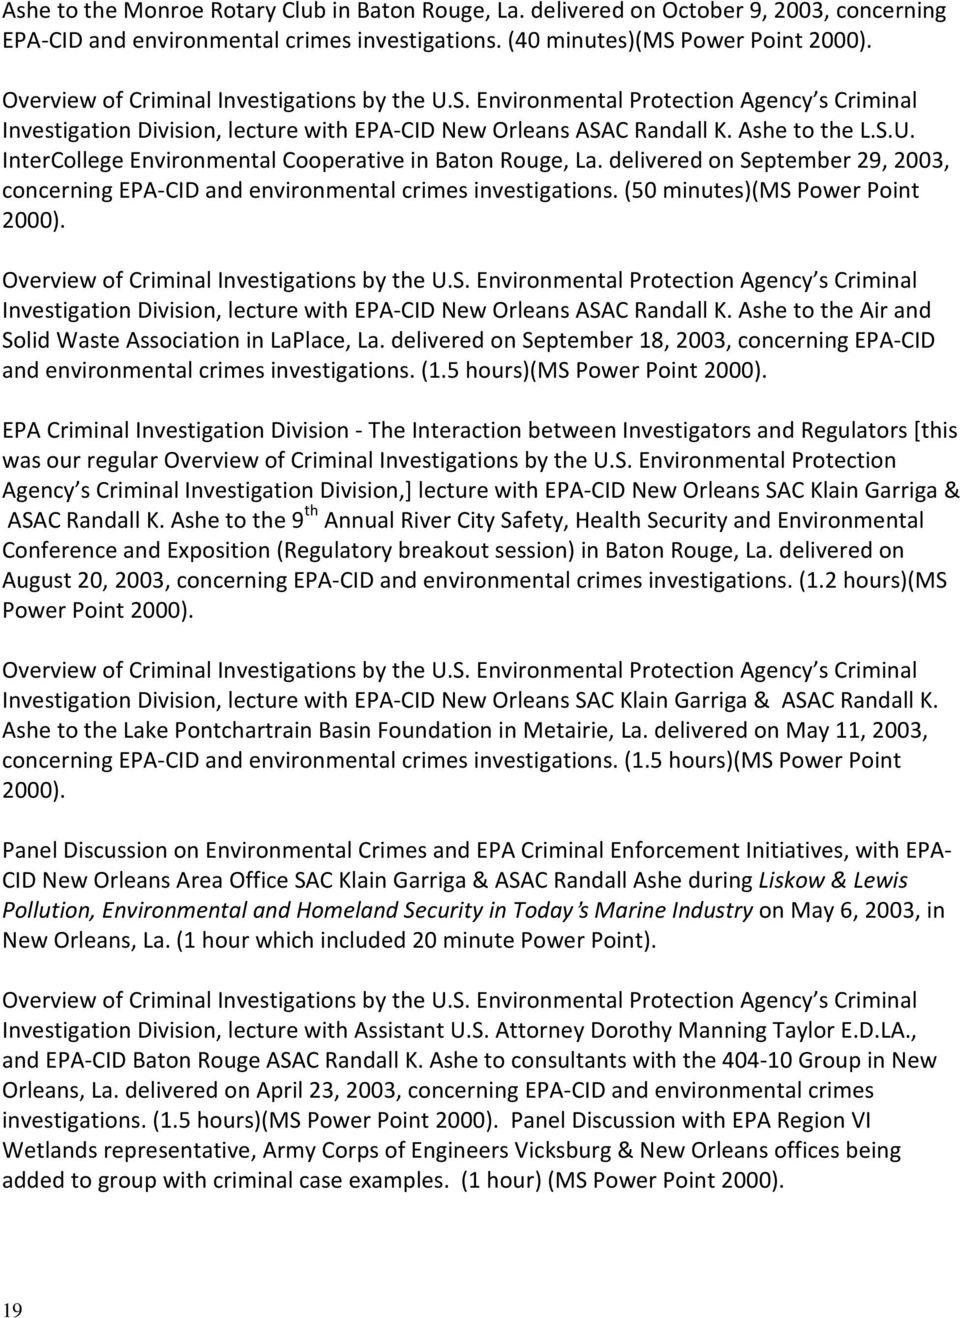 delivered on September 29, 2003, concerning EPA-CID and environmental crimes investigations. (50 minutes)(ms Power Point 2000). Investigation Division, lecture with EPA-CID New Orleans ASAC Randall K.